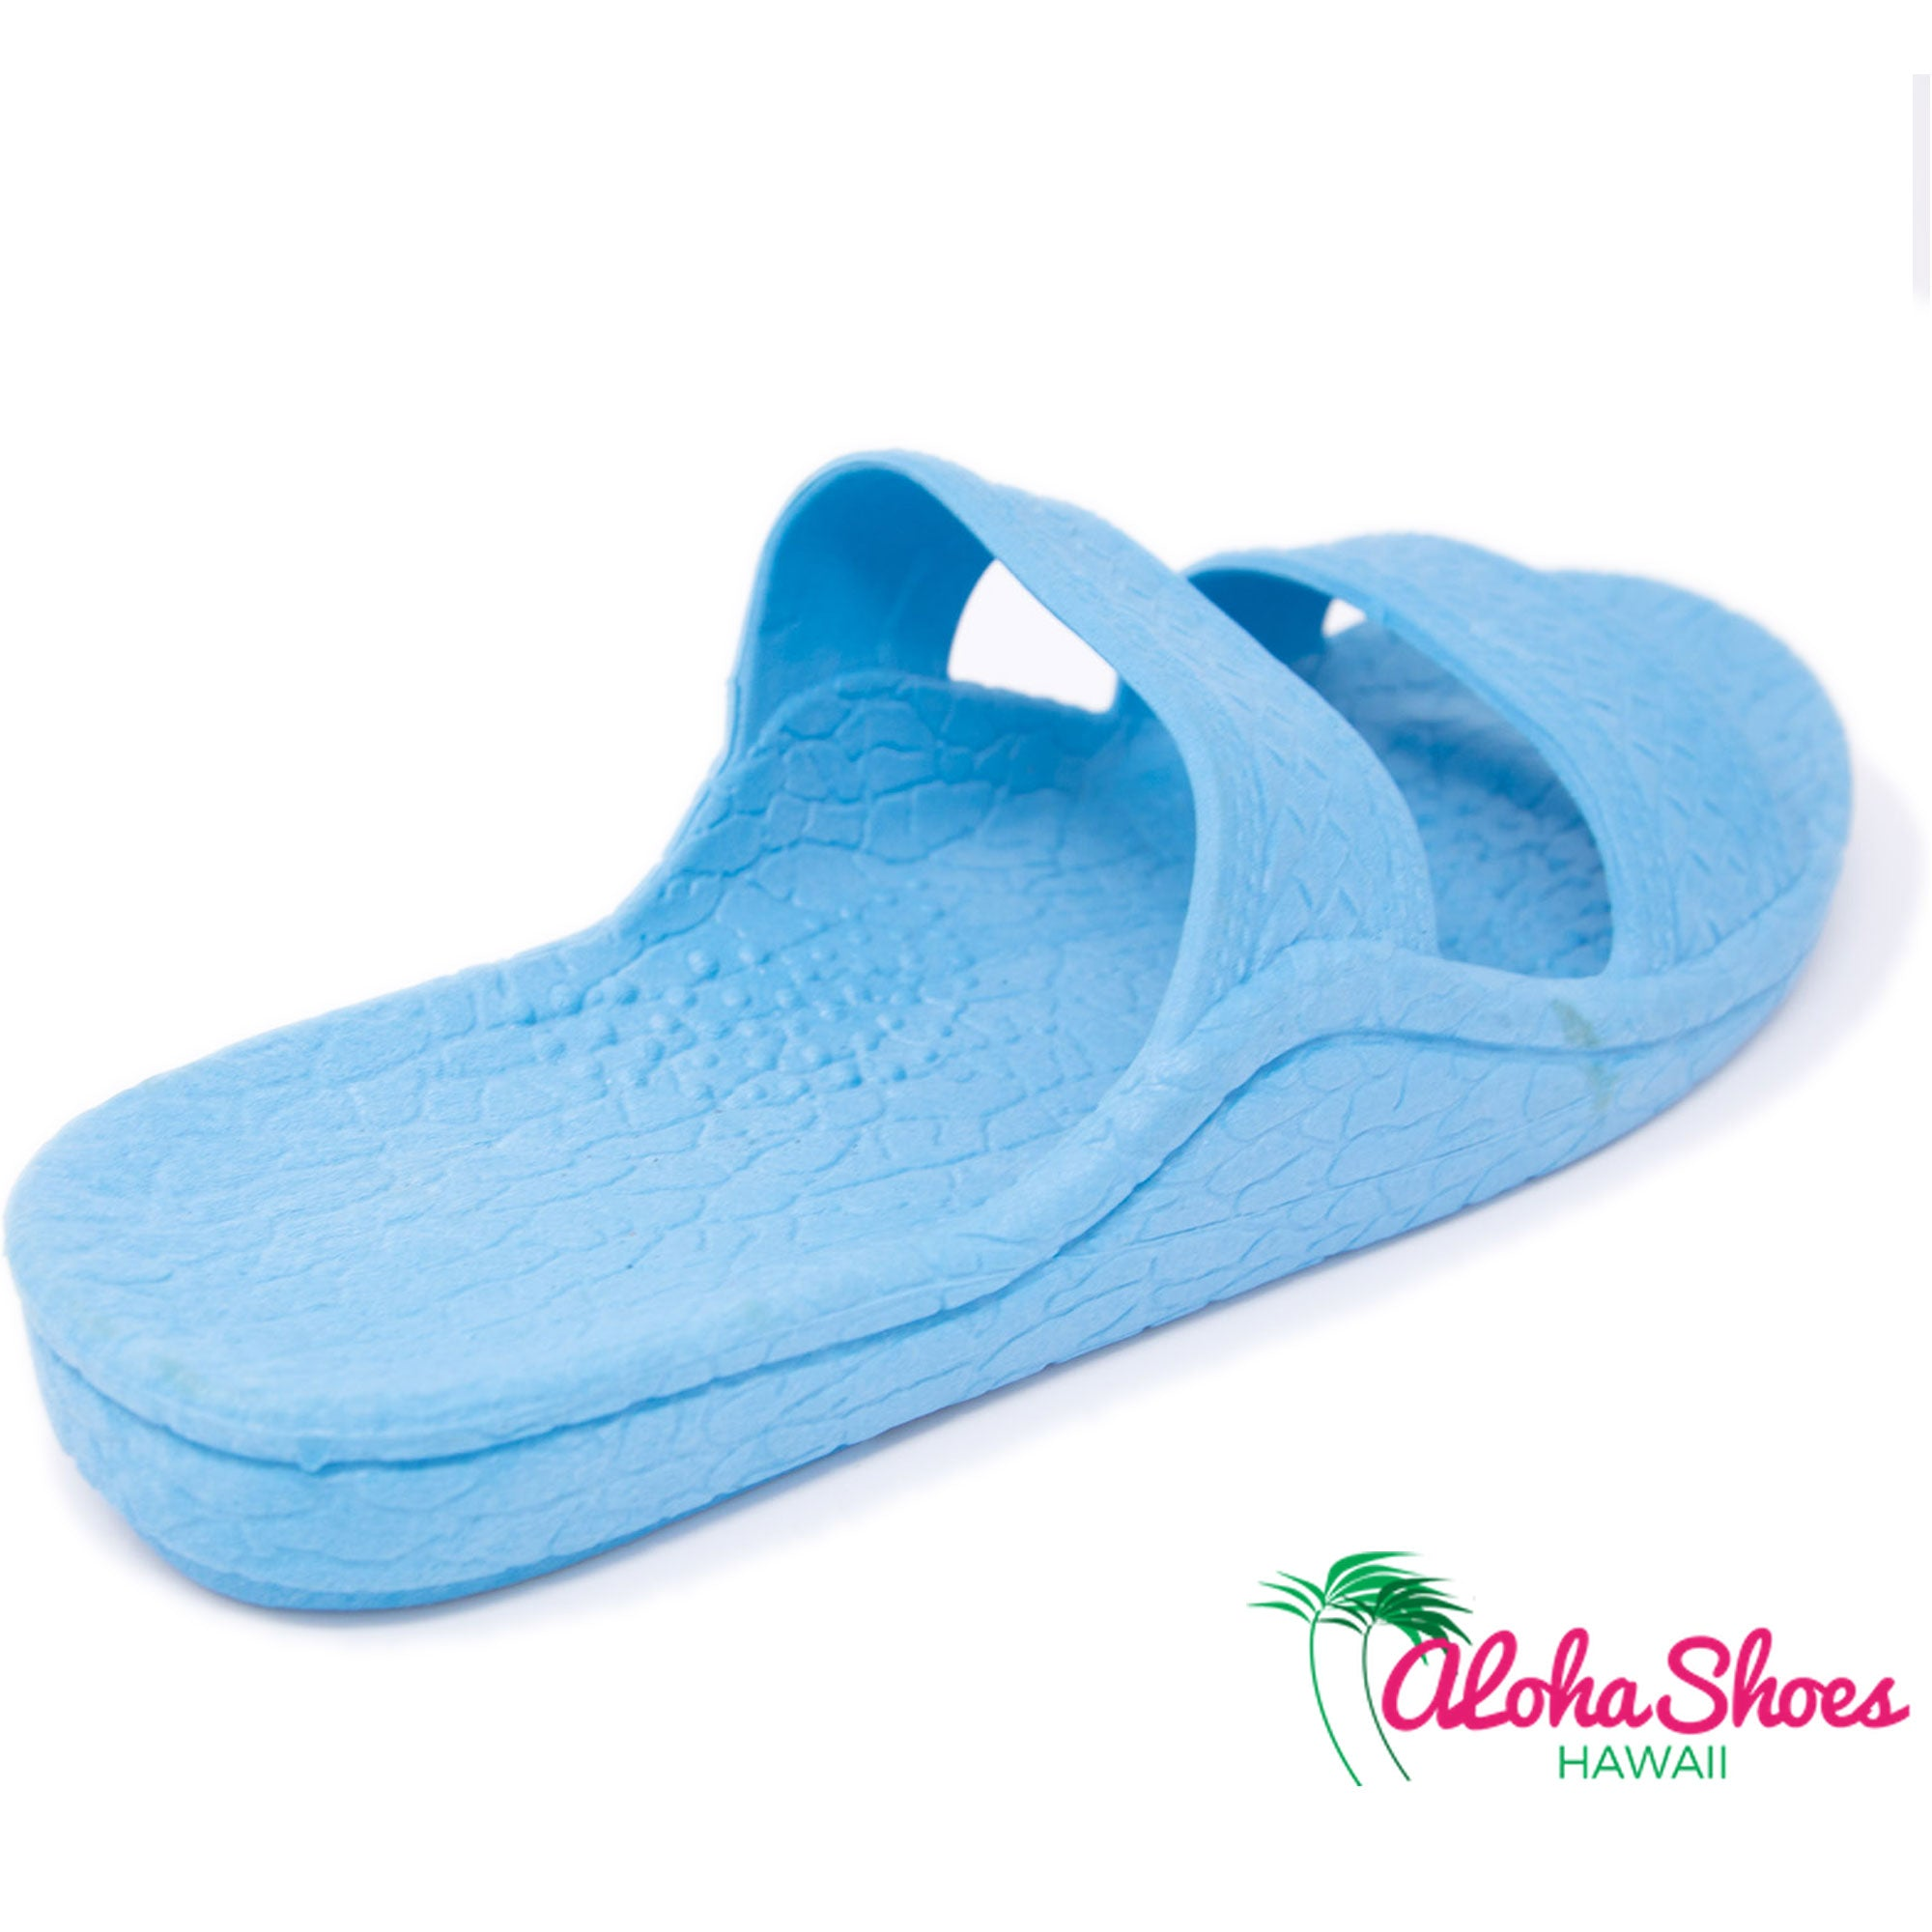 Jandals Sky Blue Pali Hawaii | Waterproof Slide Sandals - AlohaShoes.com